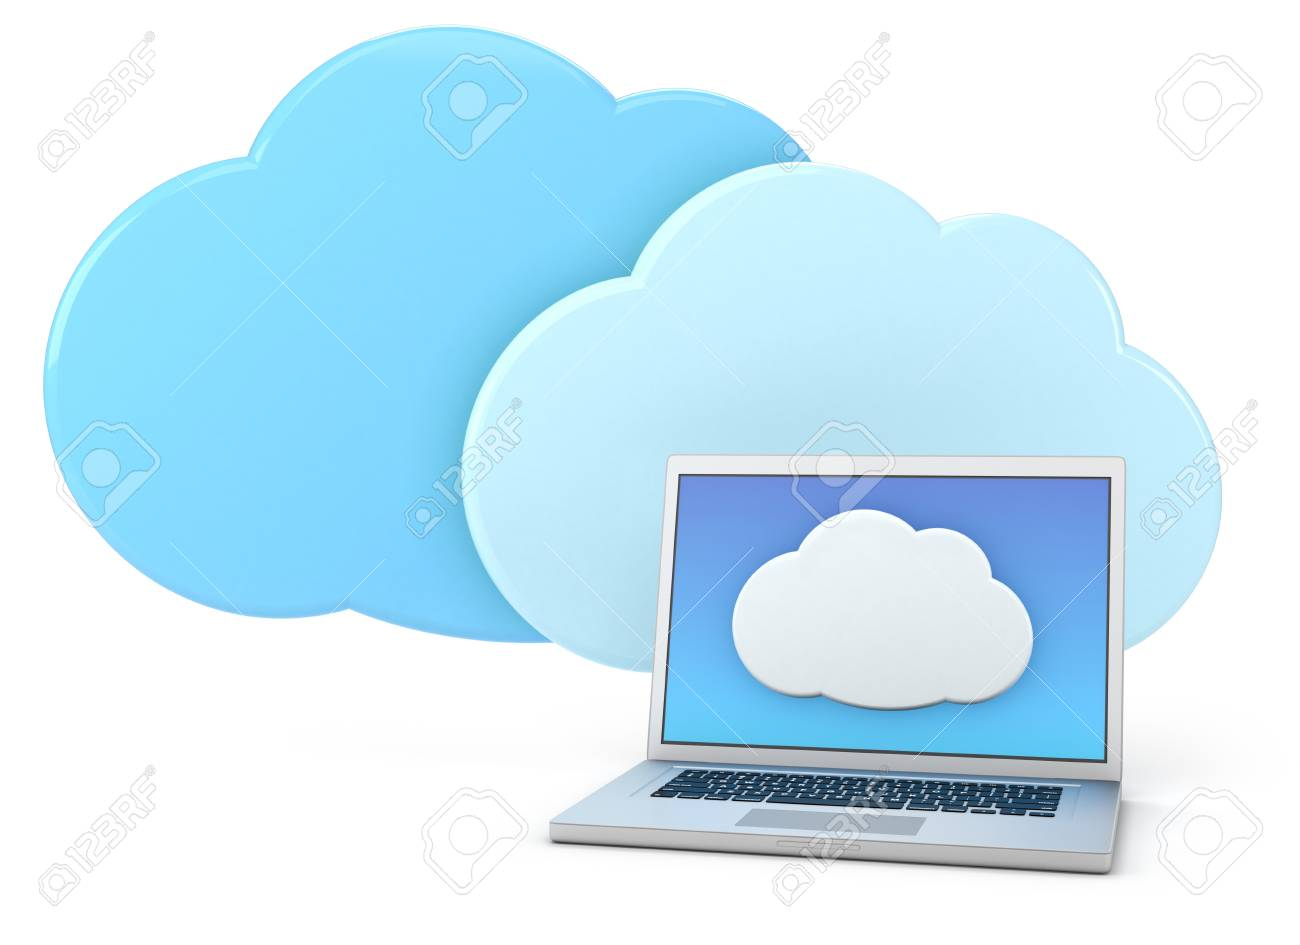 laptop computer with cloud icon - high quality 3d illustration Stock Photo - 14648320